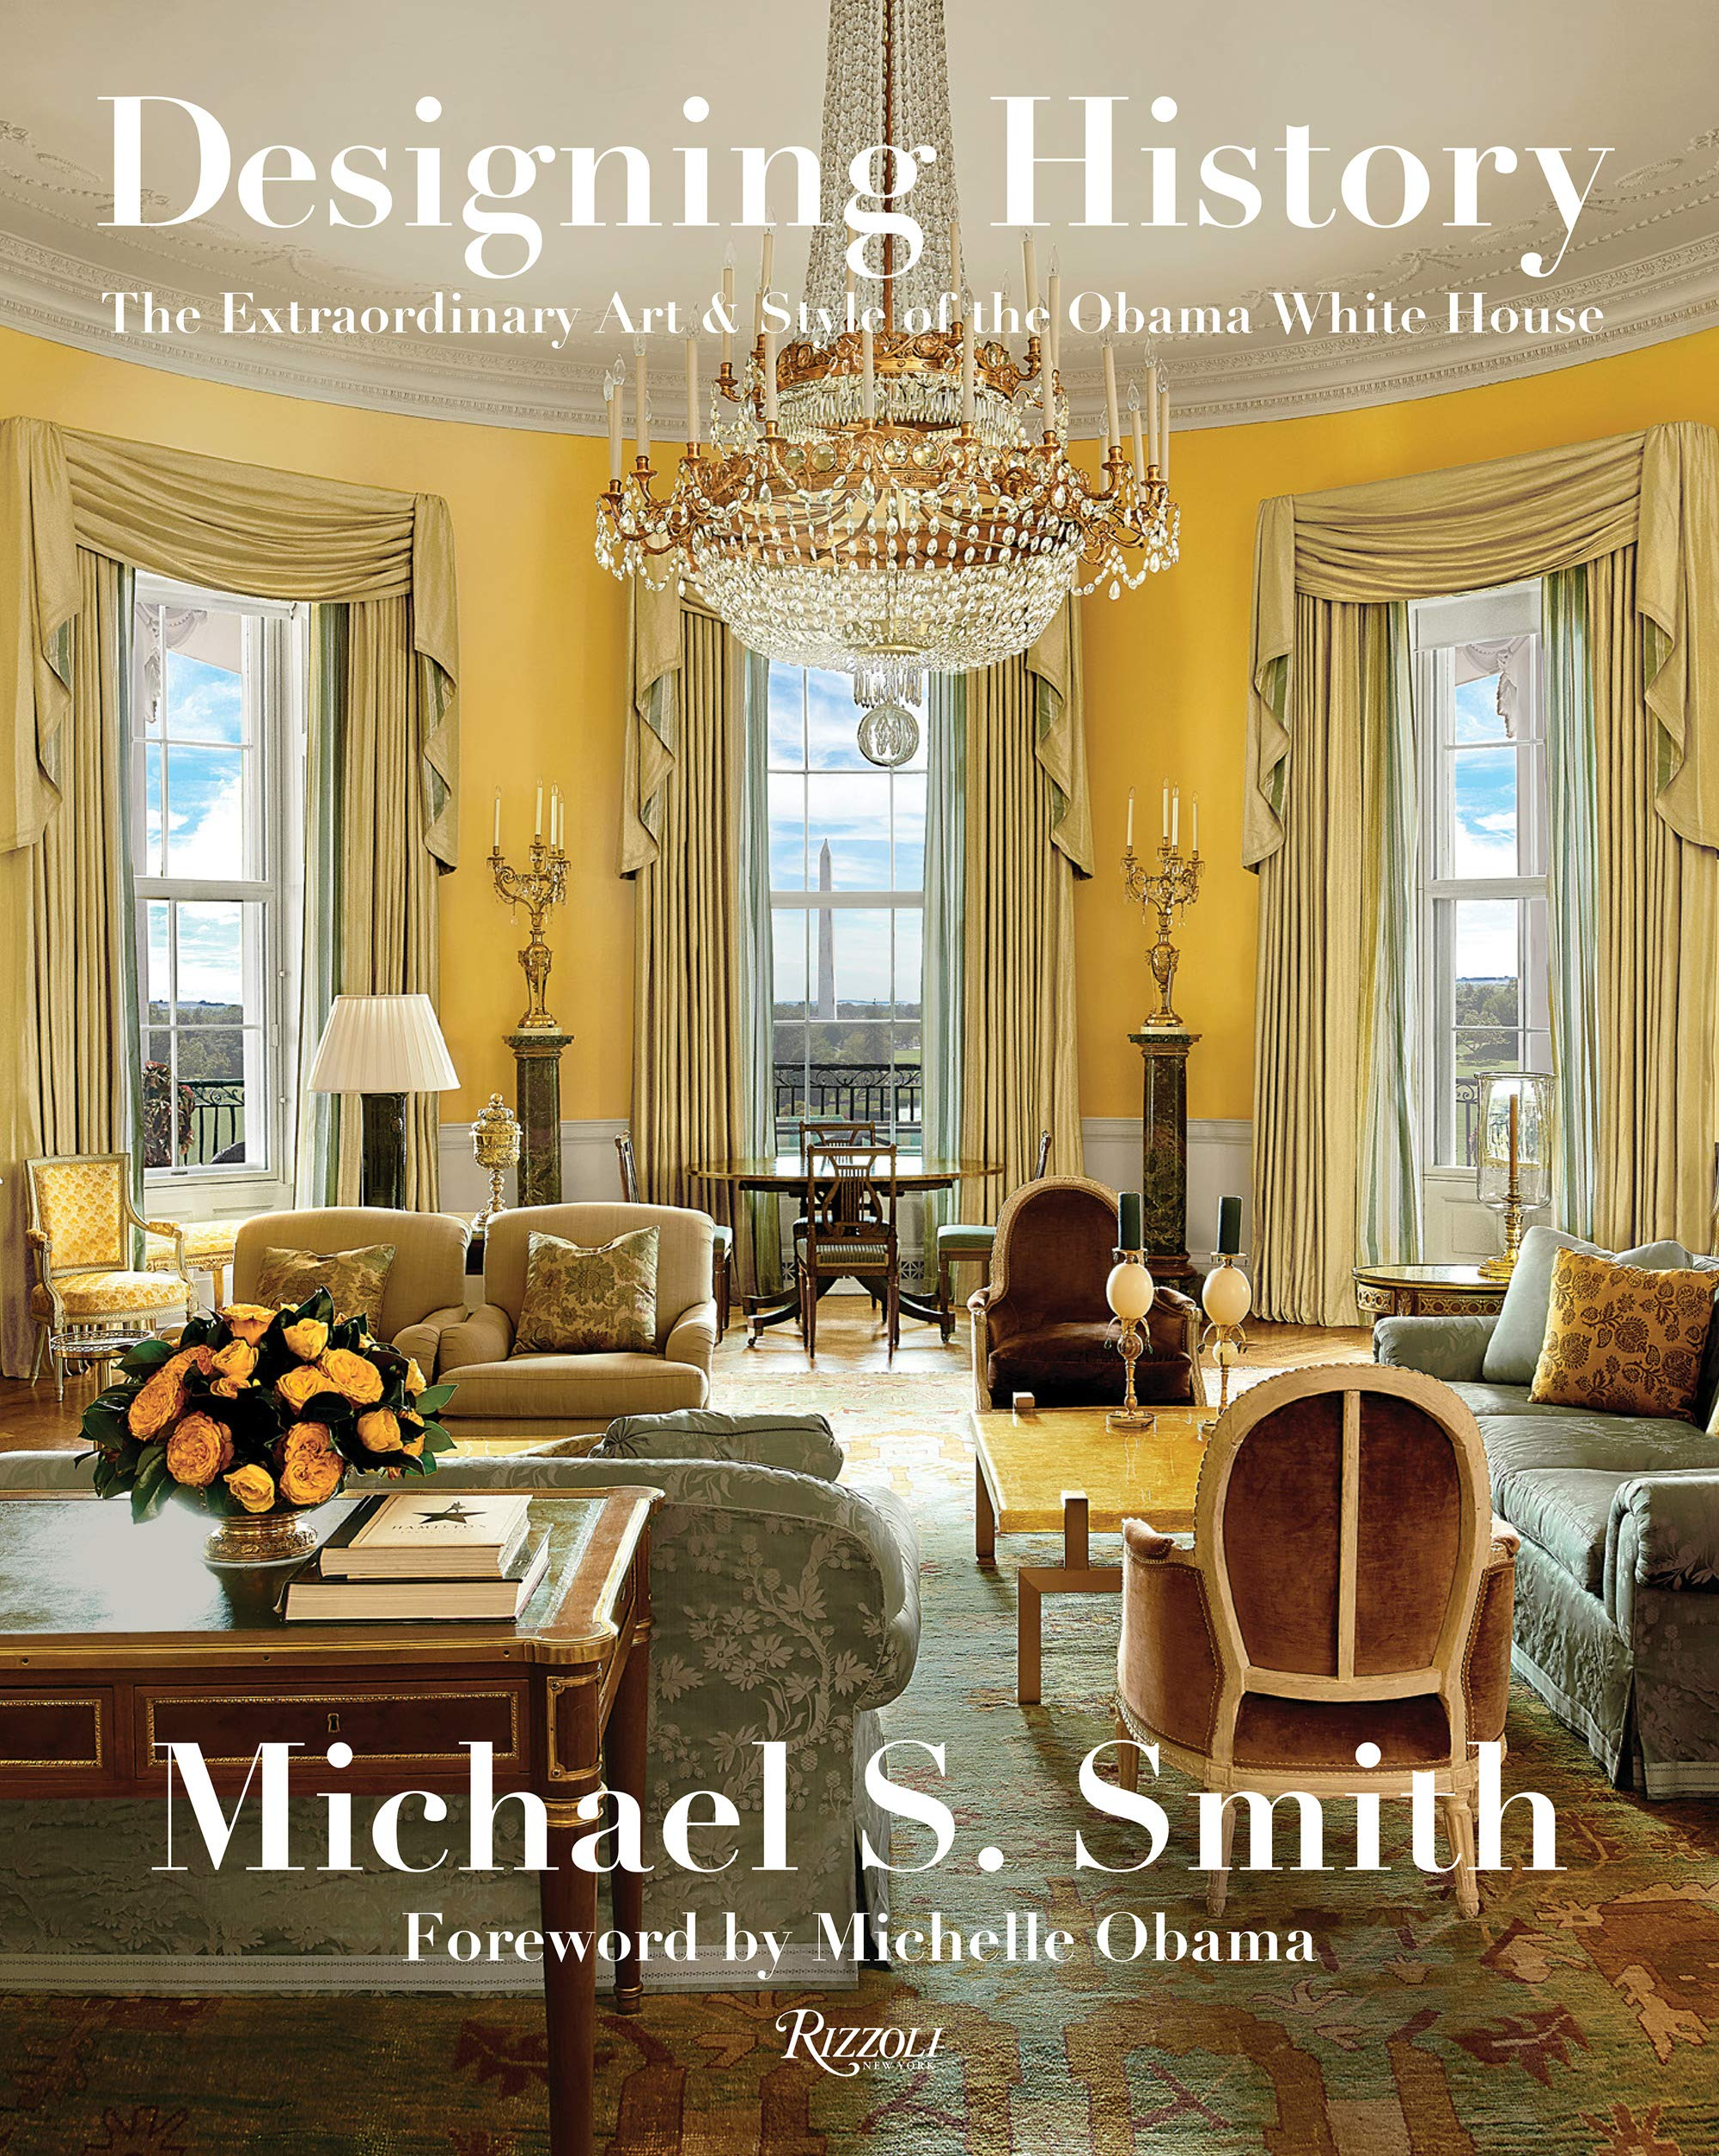 Designing History The Extraordinary Art Style Of The Obama White House Smith Michael S Russell Margaret Obama Michelle 9780847864799 Amazon Com Books